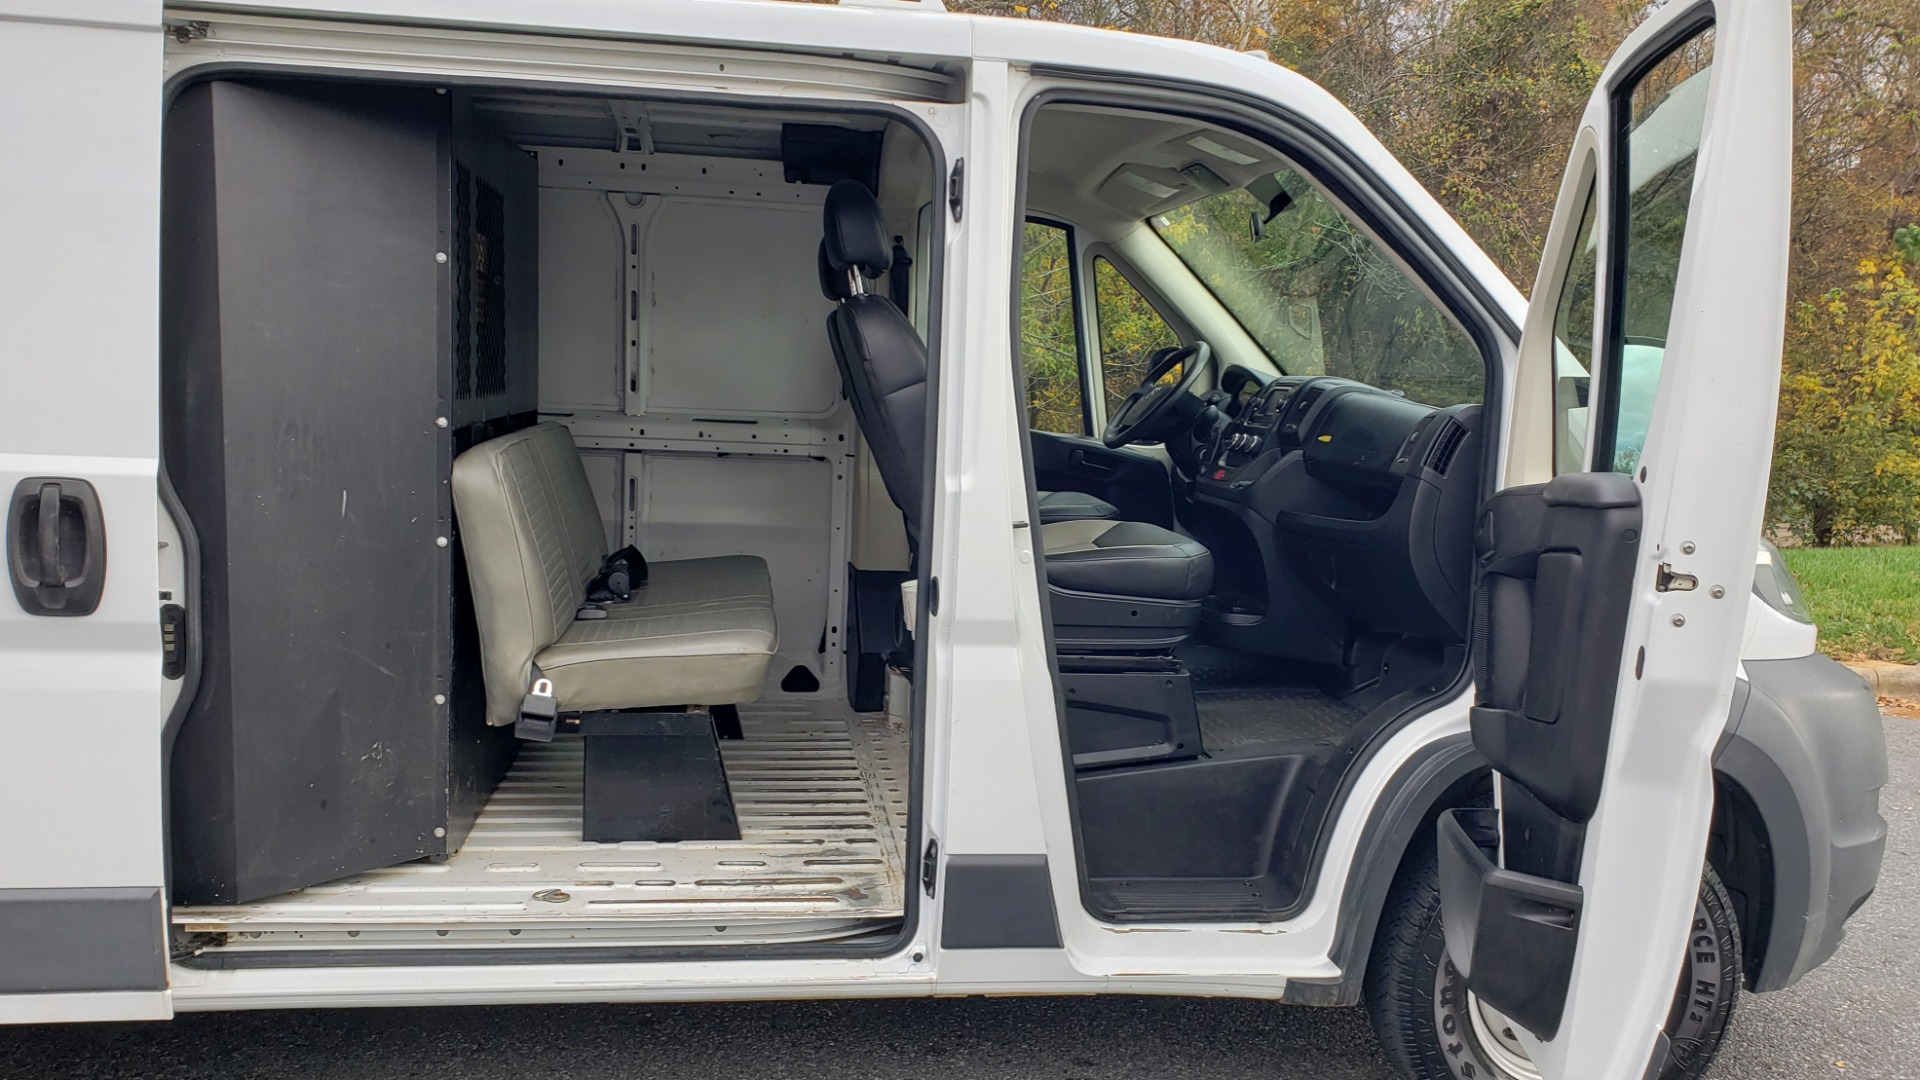 Used 2015 Ram PROMASTER CARGO VAN 136-INCH WB / LOW ROOF / LADDER RACK / INSIDE RACKS for sale $16,995 at Formula Imports in Charlotte NC 28227 12